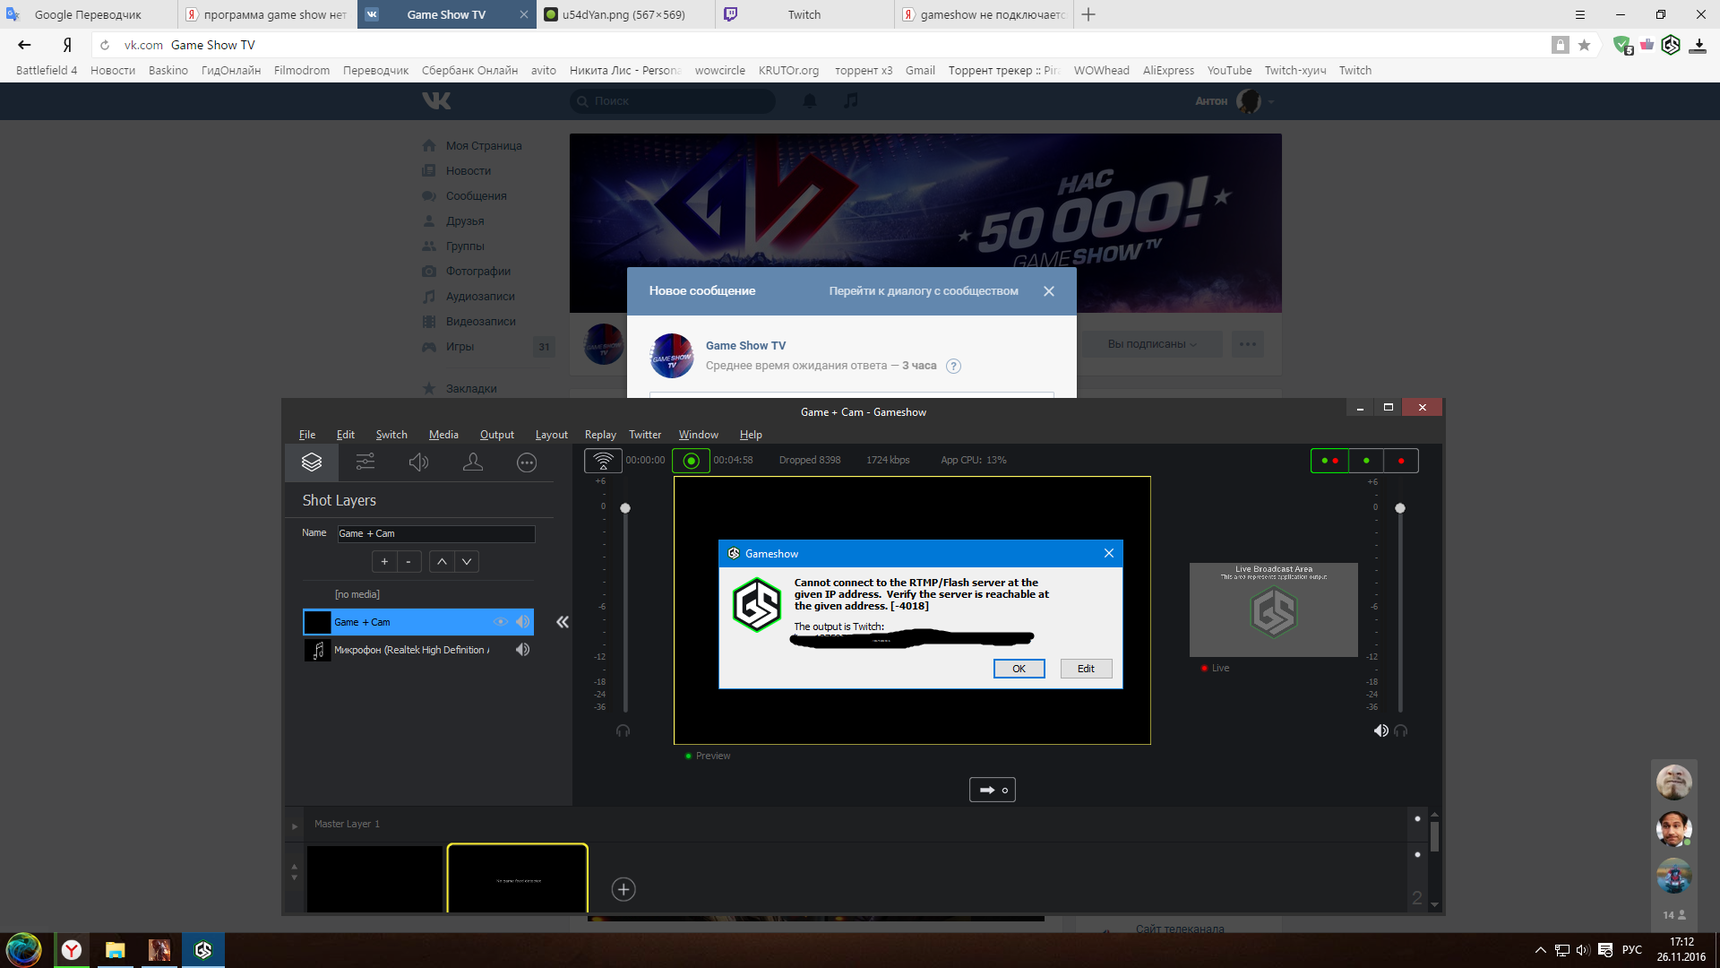 twitch cannot connect to the rtmp flash server at the fiven ip